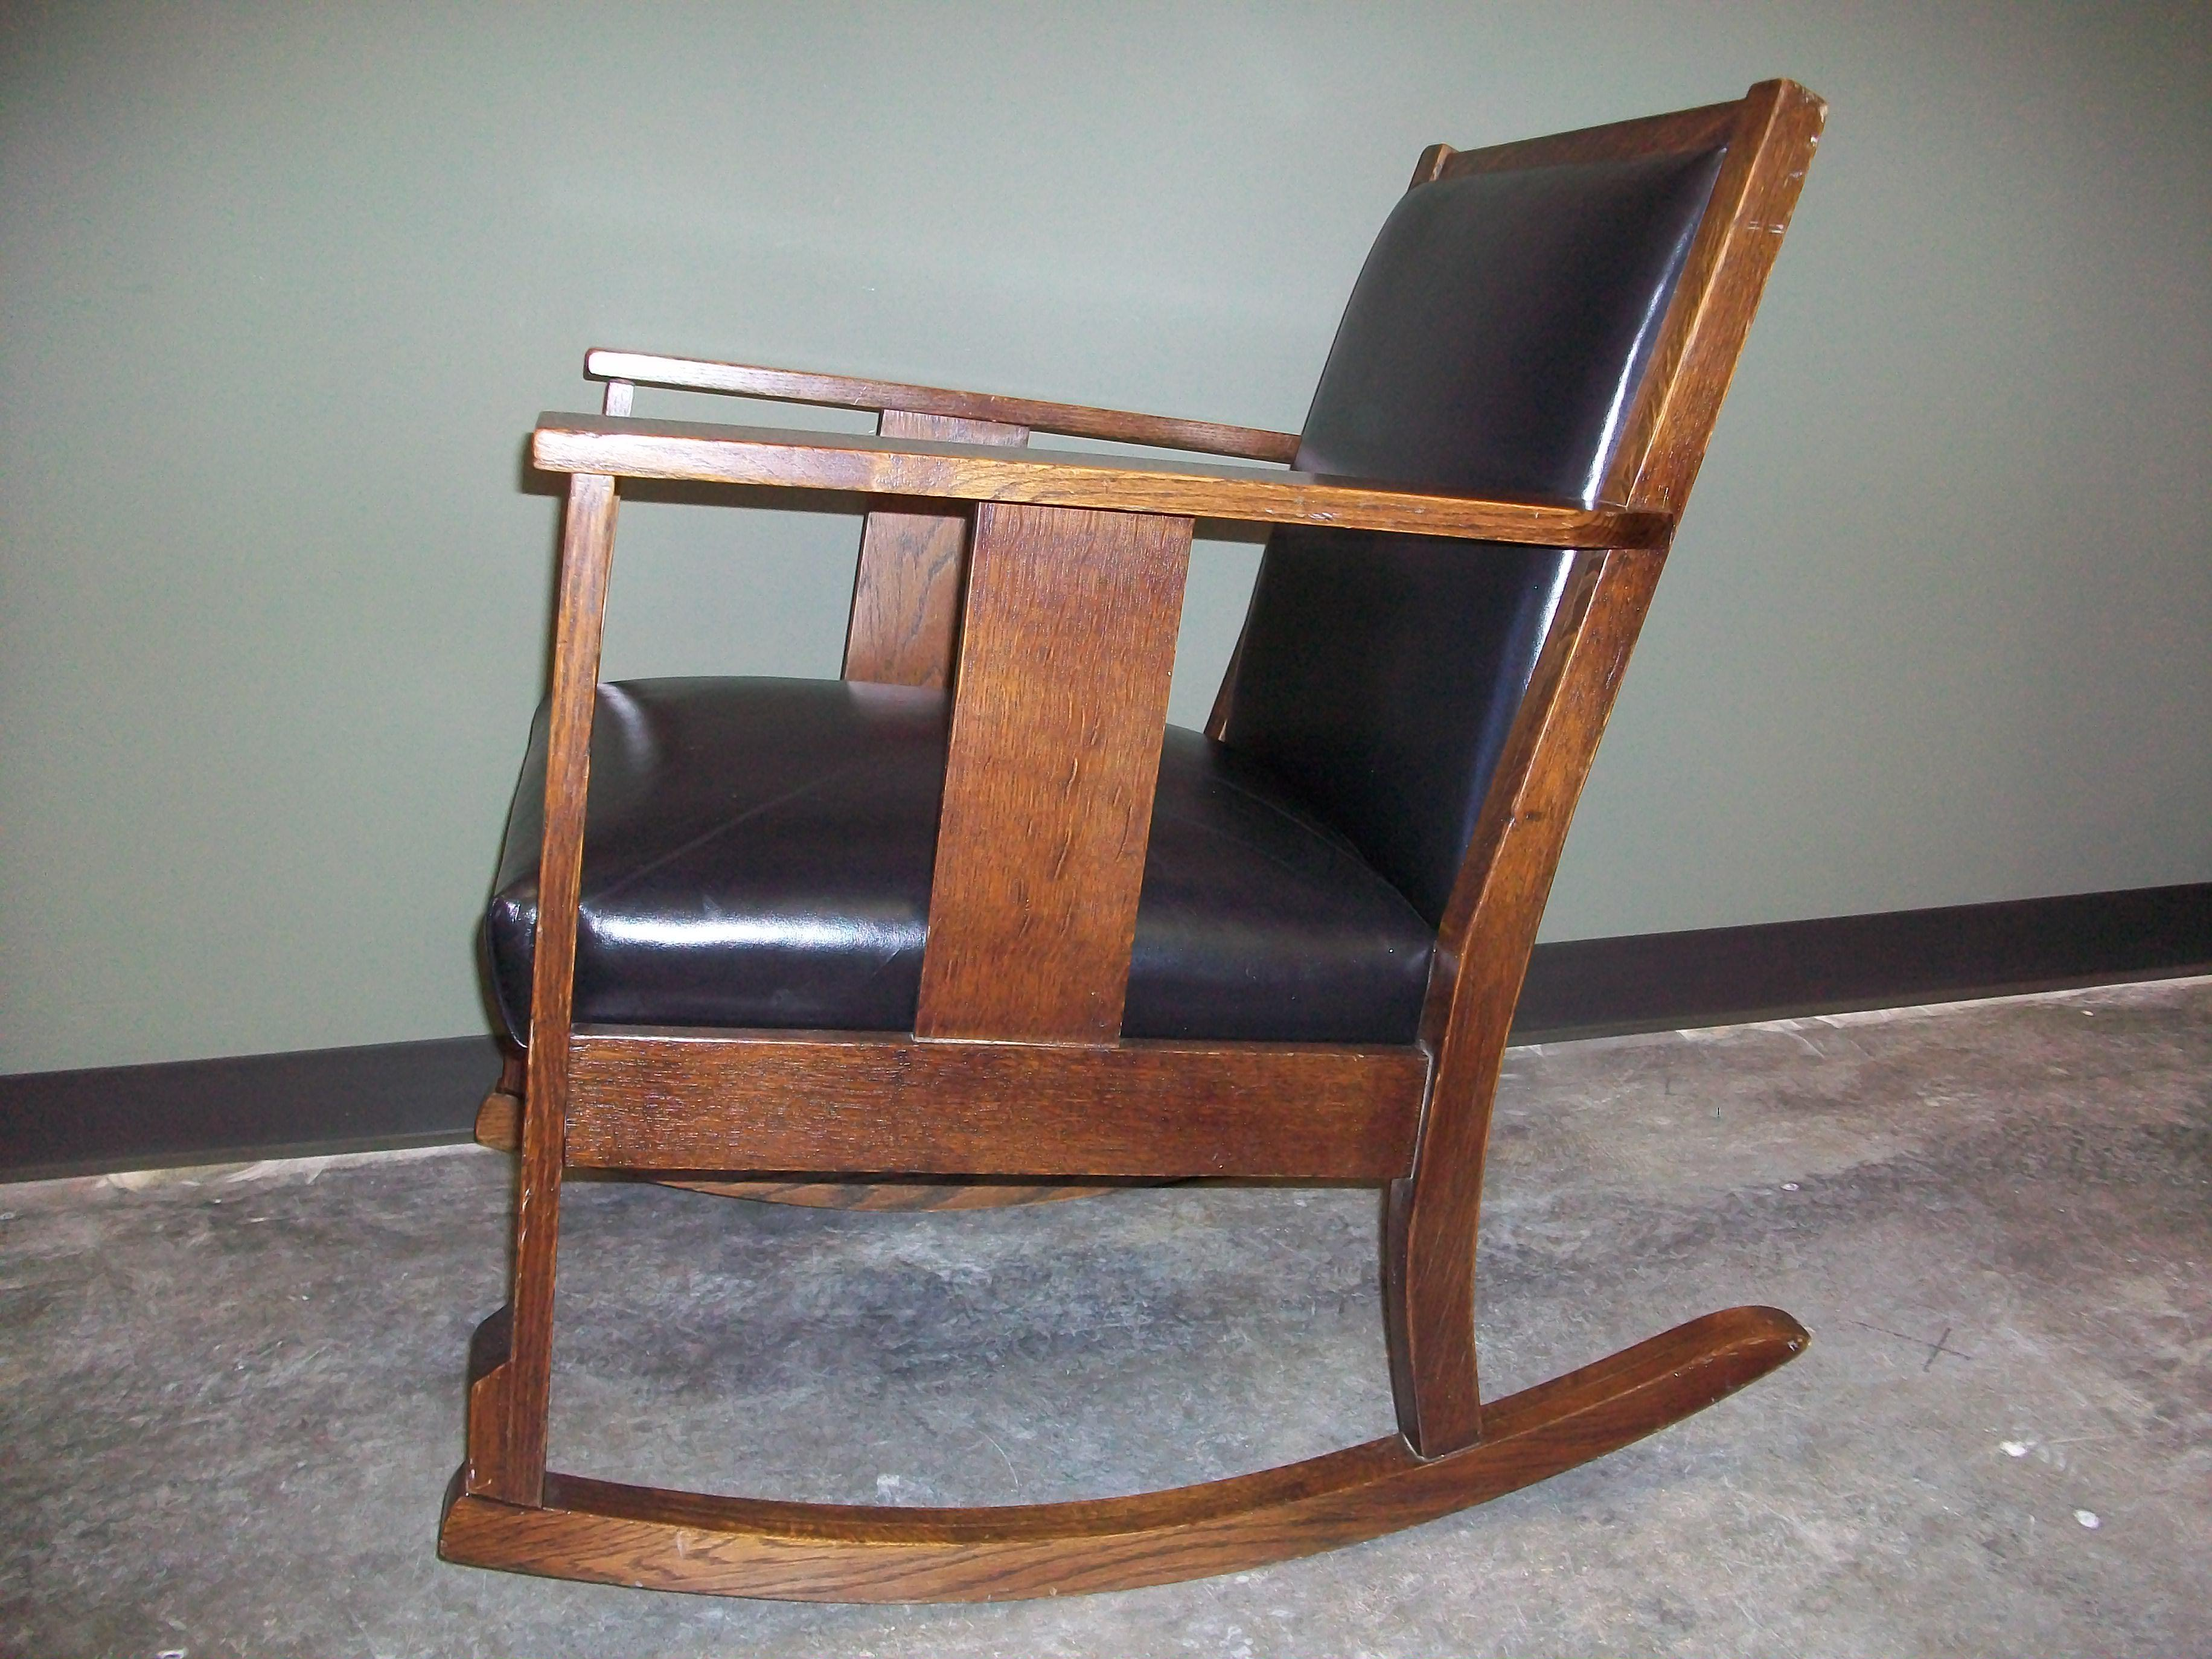 Antique Mission Oak Rocking Chair - Image 2 of 9  sc 1 st  Chairish & Antique Mission Oak Rocking Chair | Chairish